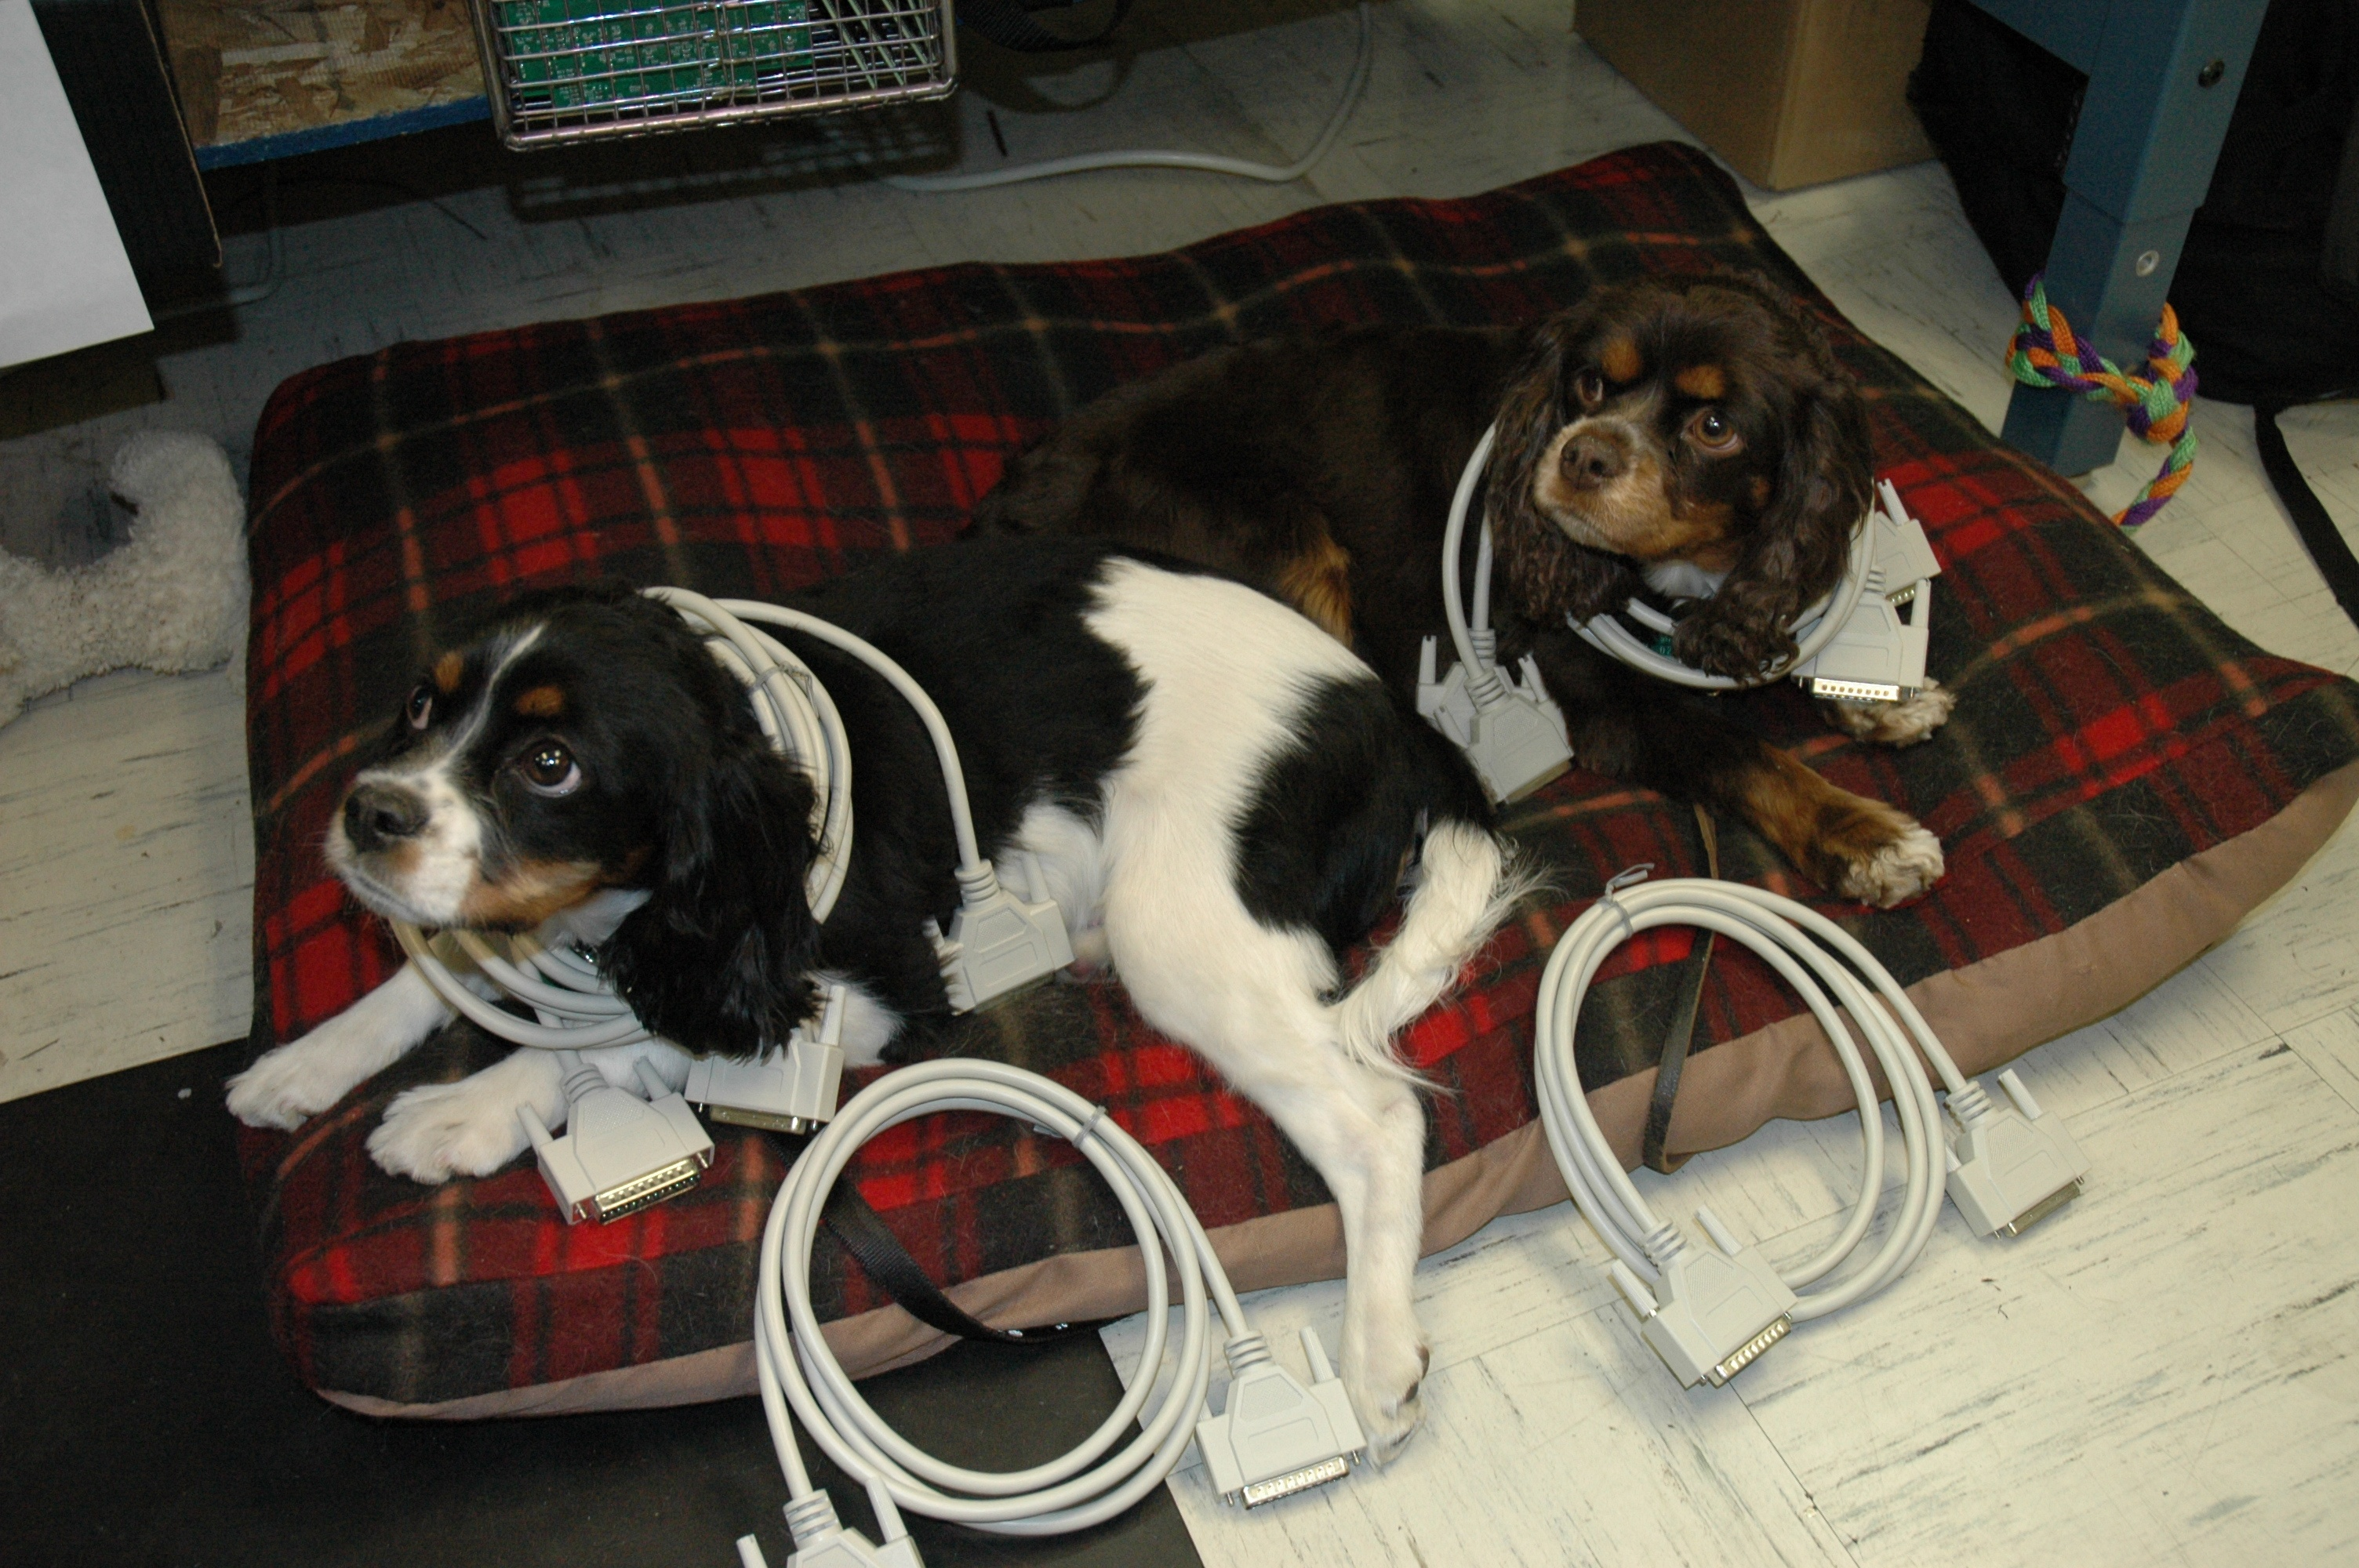 Dogs guarding cables